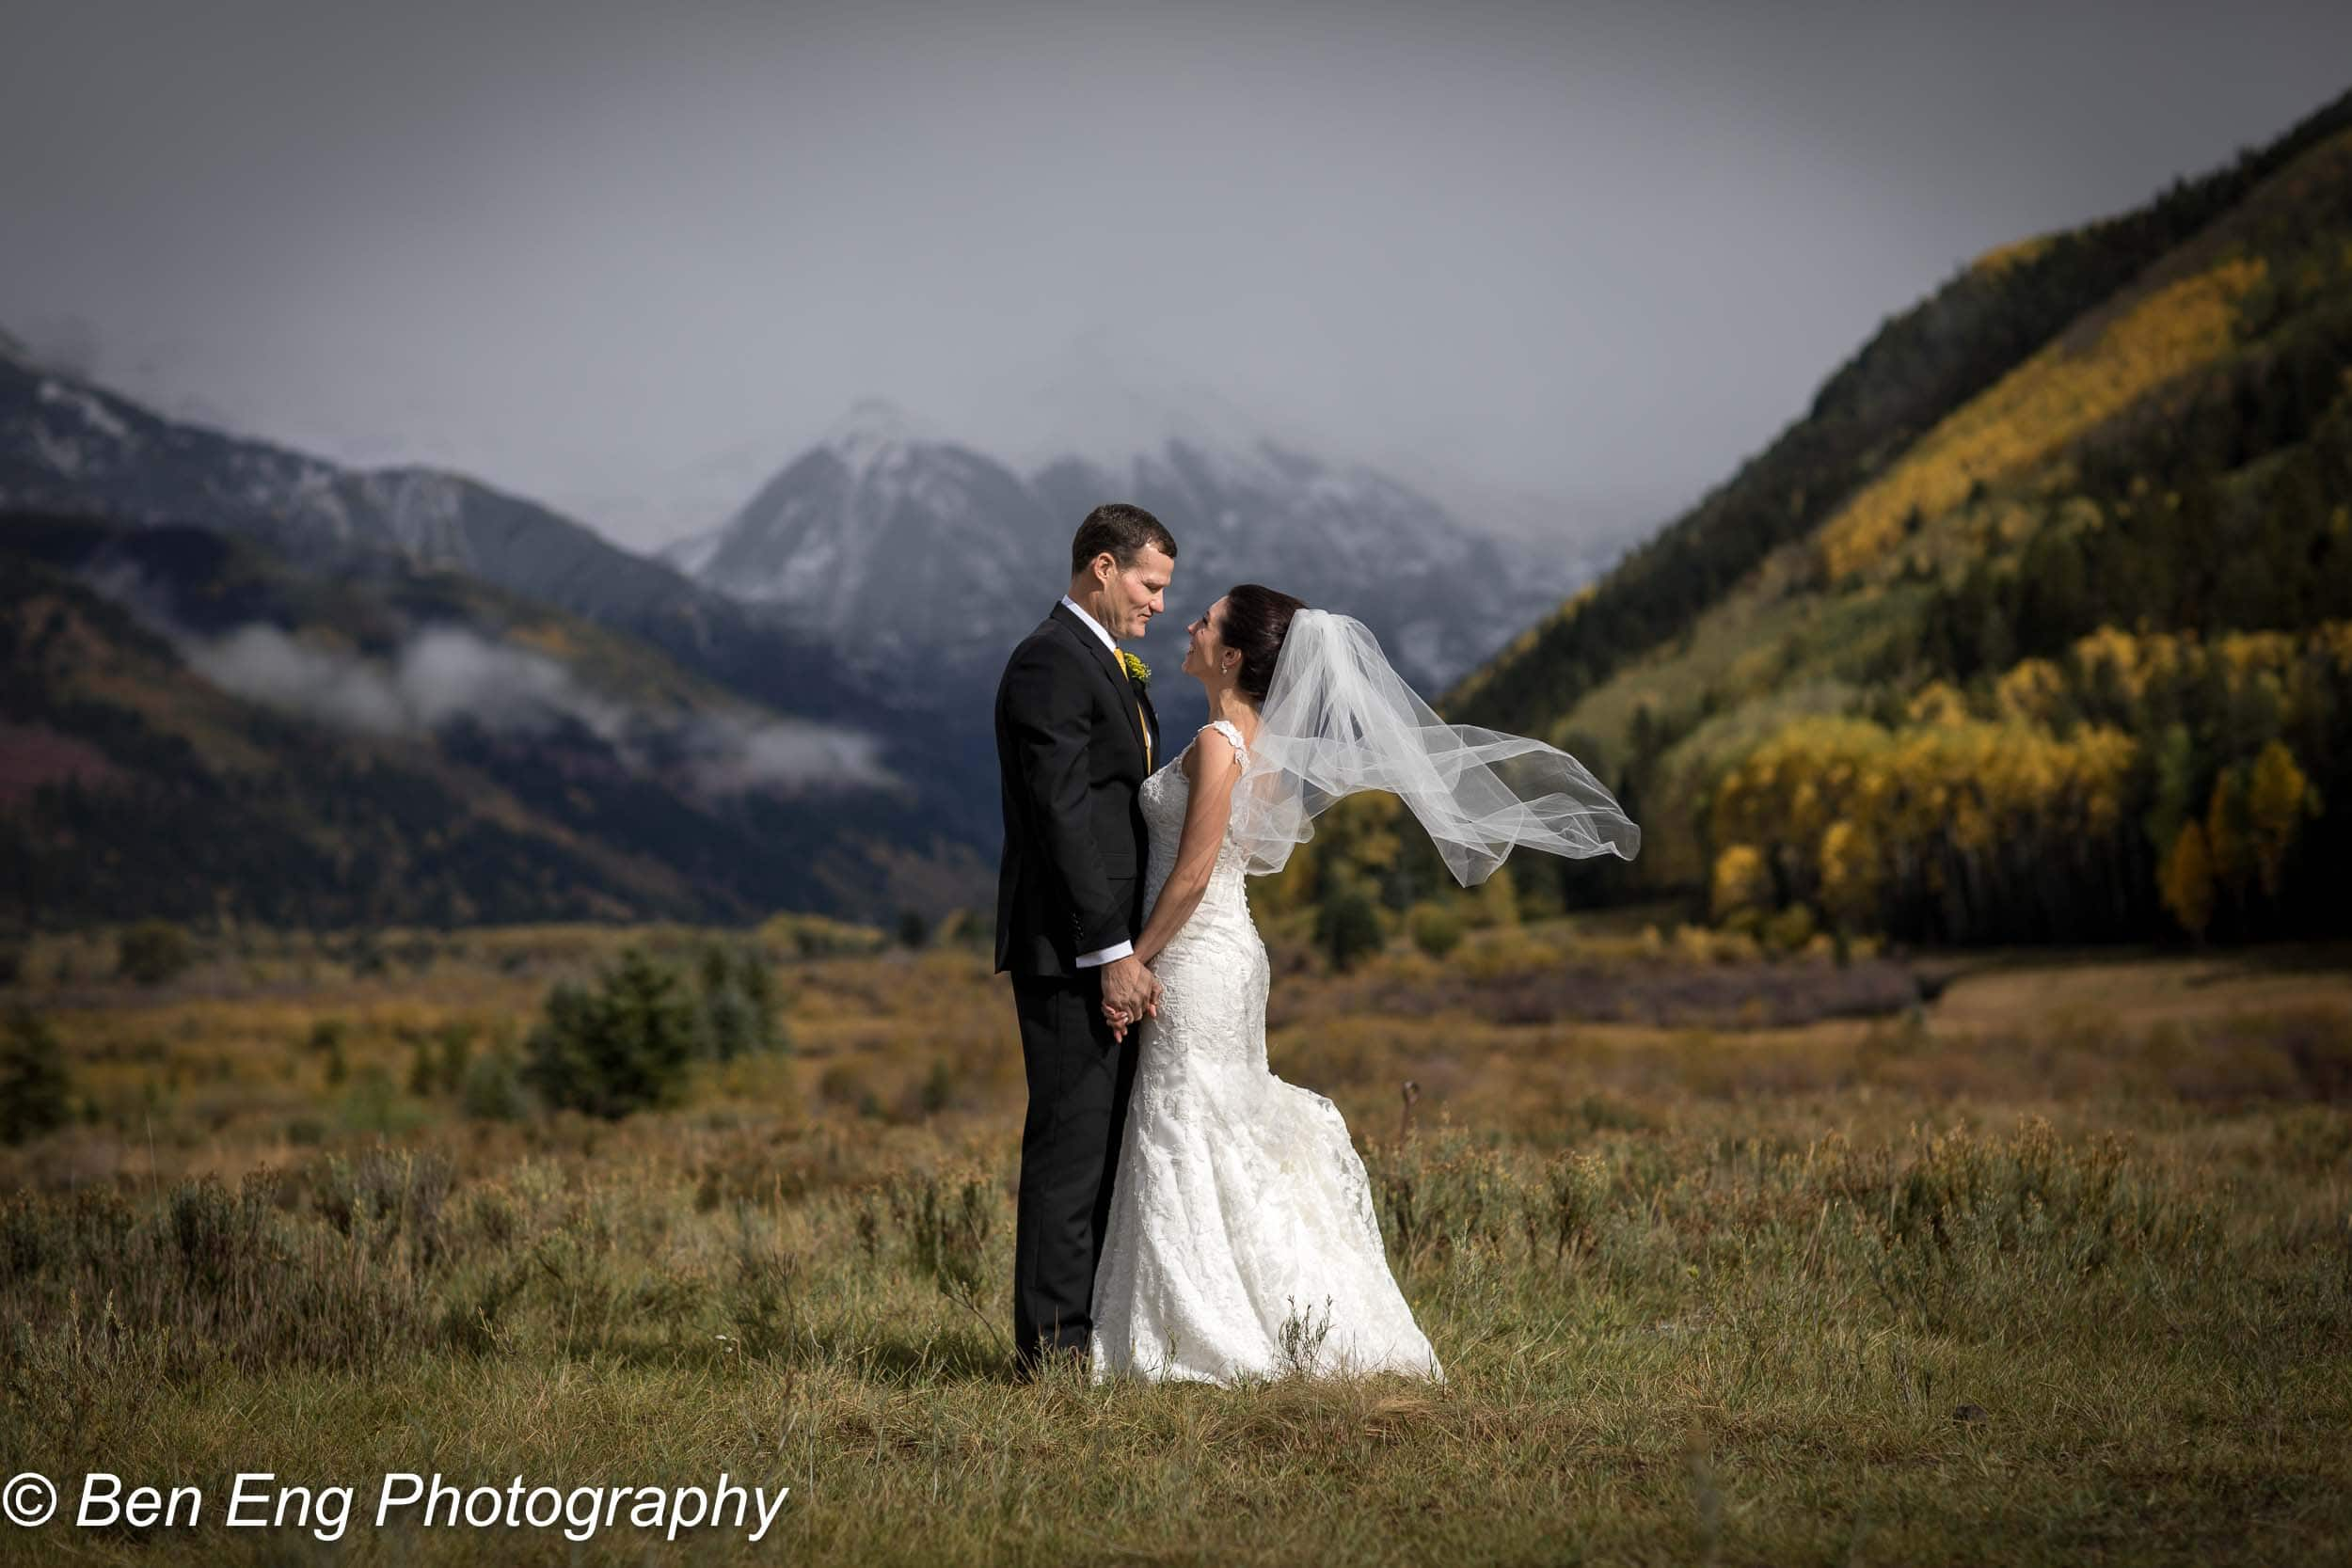 Mike and Natania's wedding at the Peaks Resort in Telluride, Colorado.